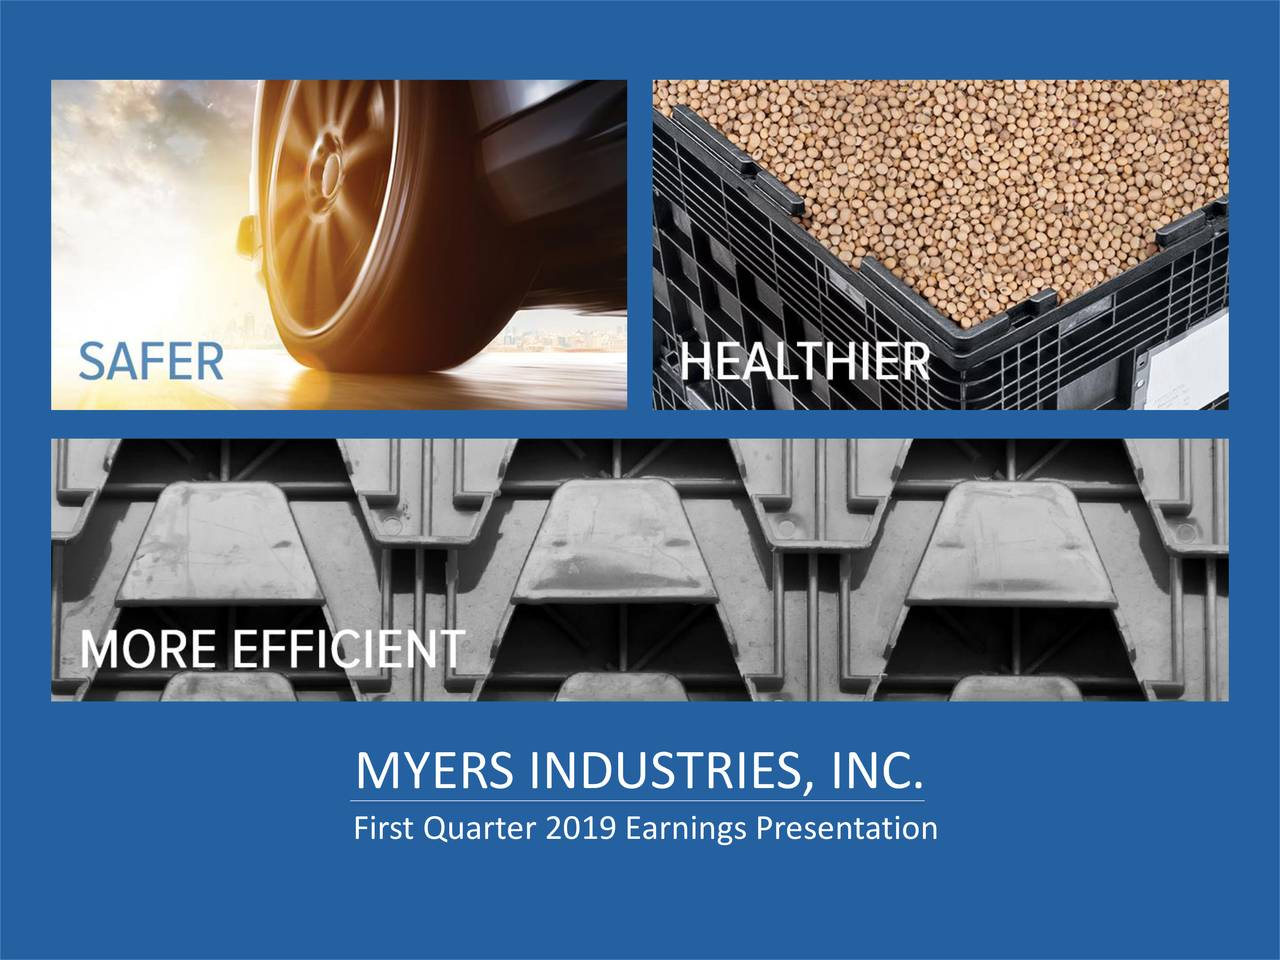 21 54 91 Color 37 97 161 142 184 230 211 227 245 Font Color 56 67 73 MYERS INDUSTRIES, INC. First Quarter 2019 Earnings Presentation